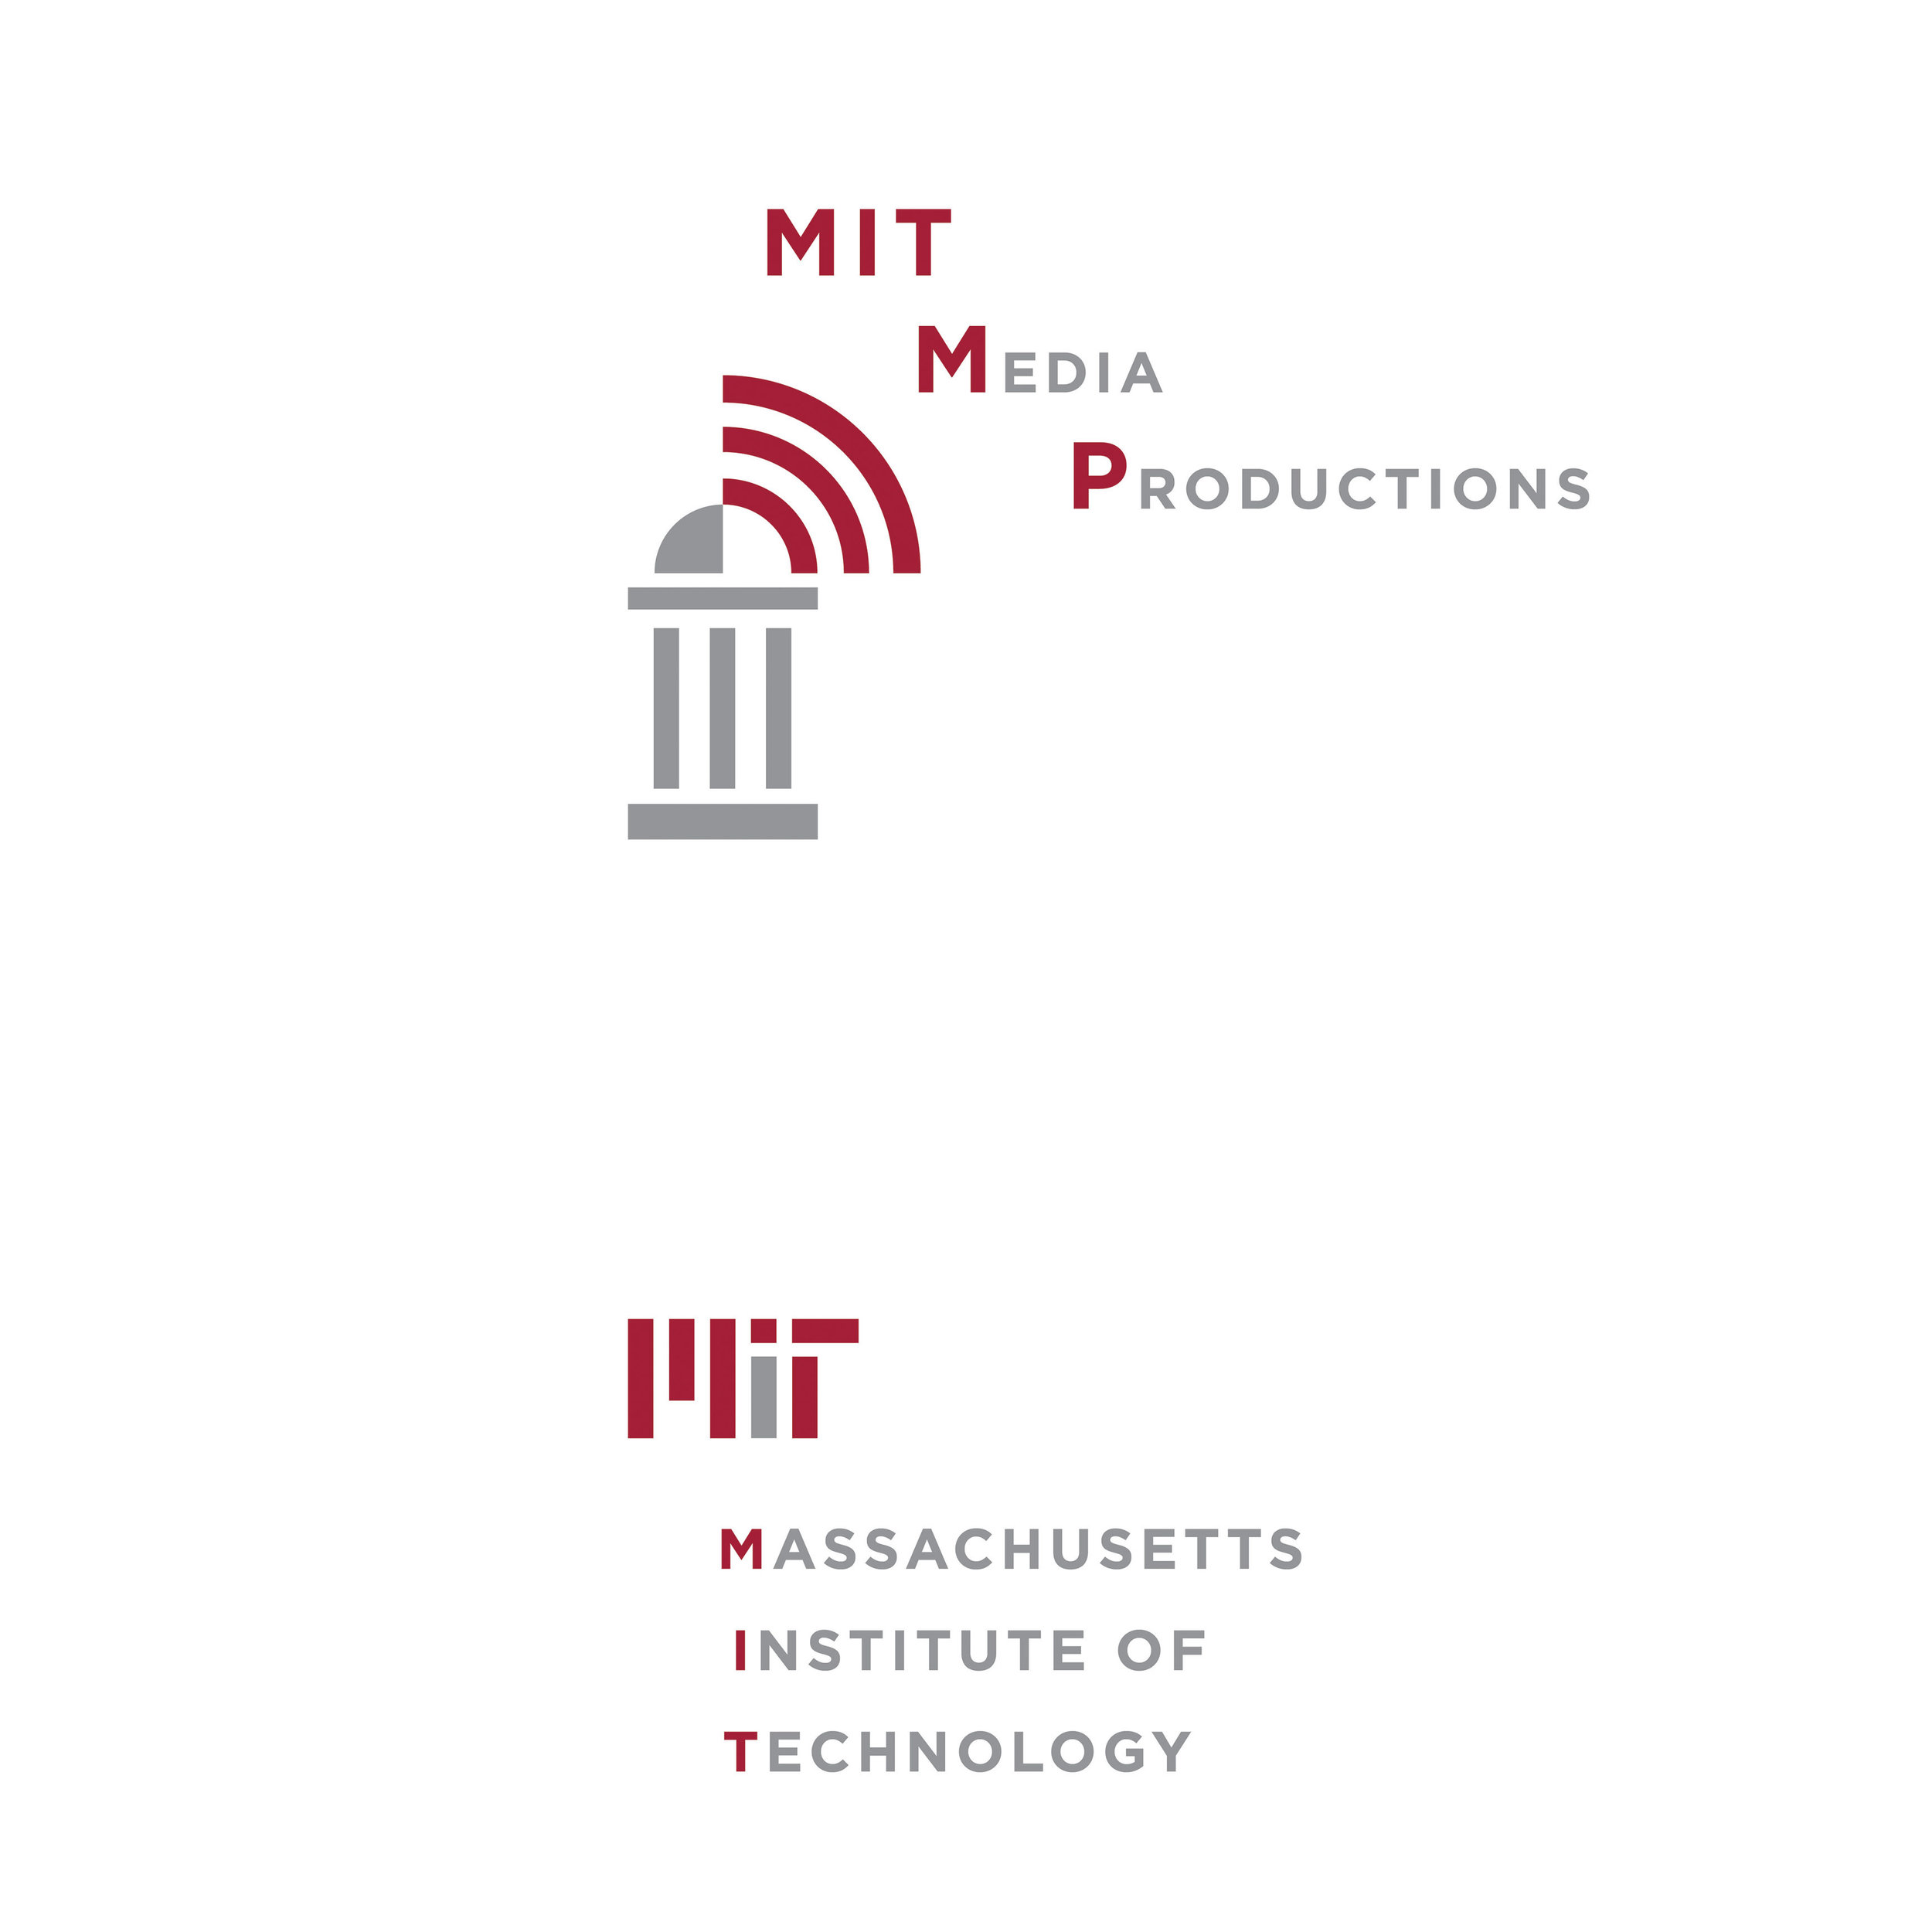 Logo design for MIT Media Productions